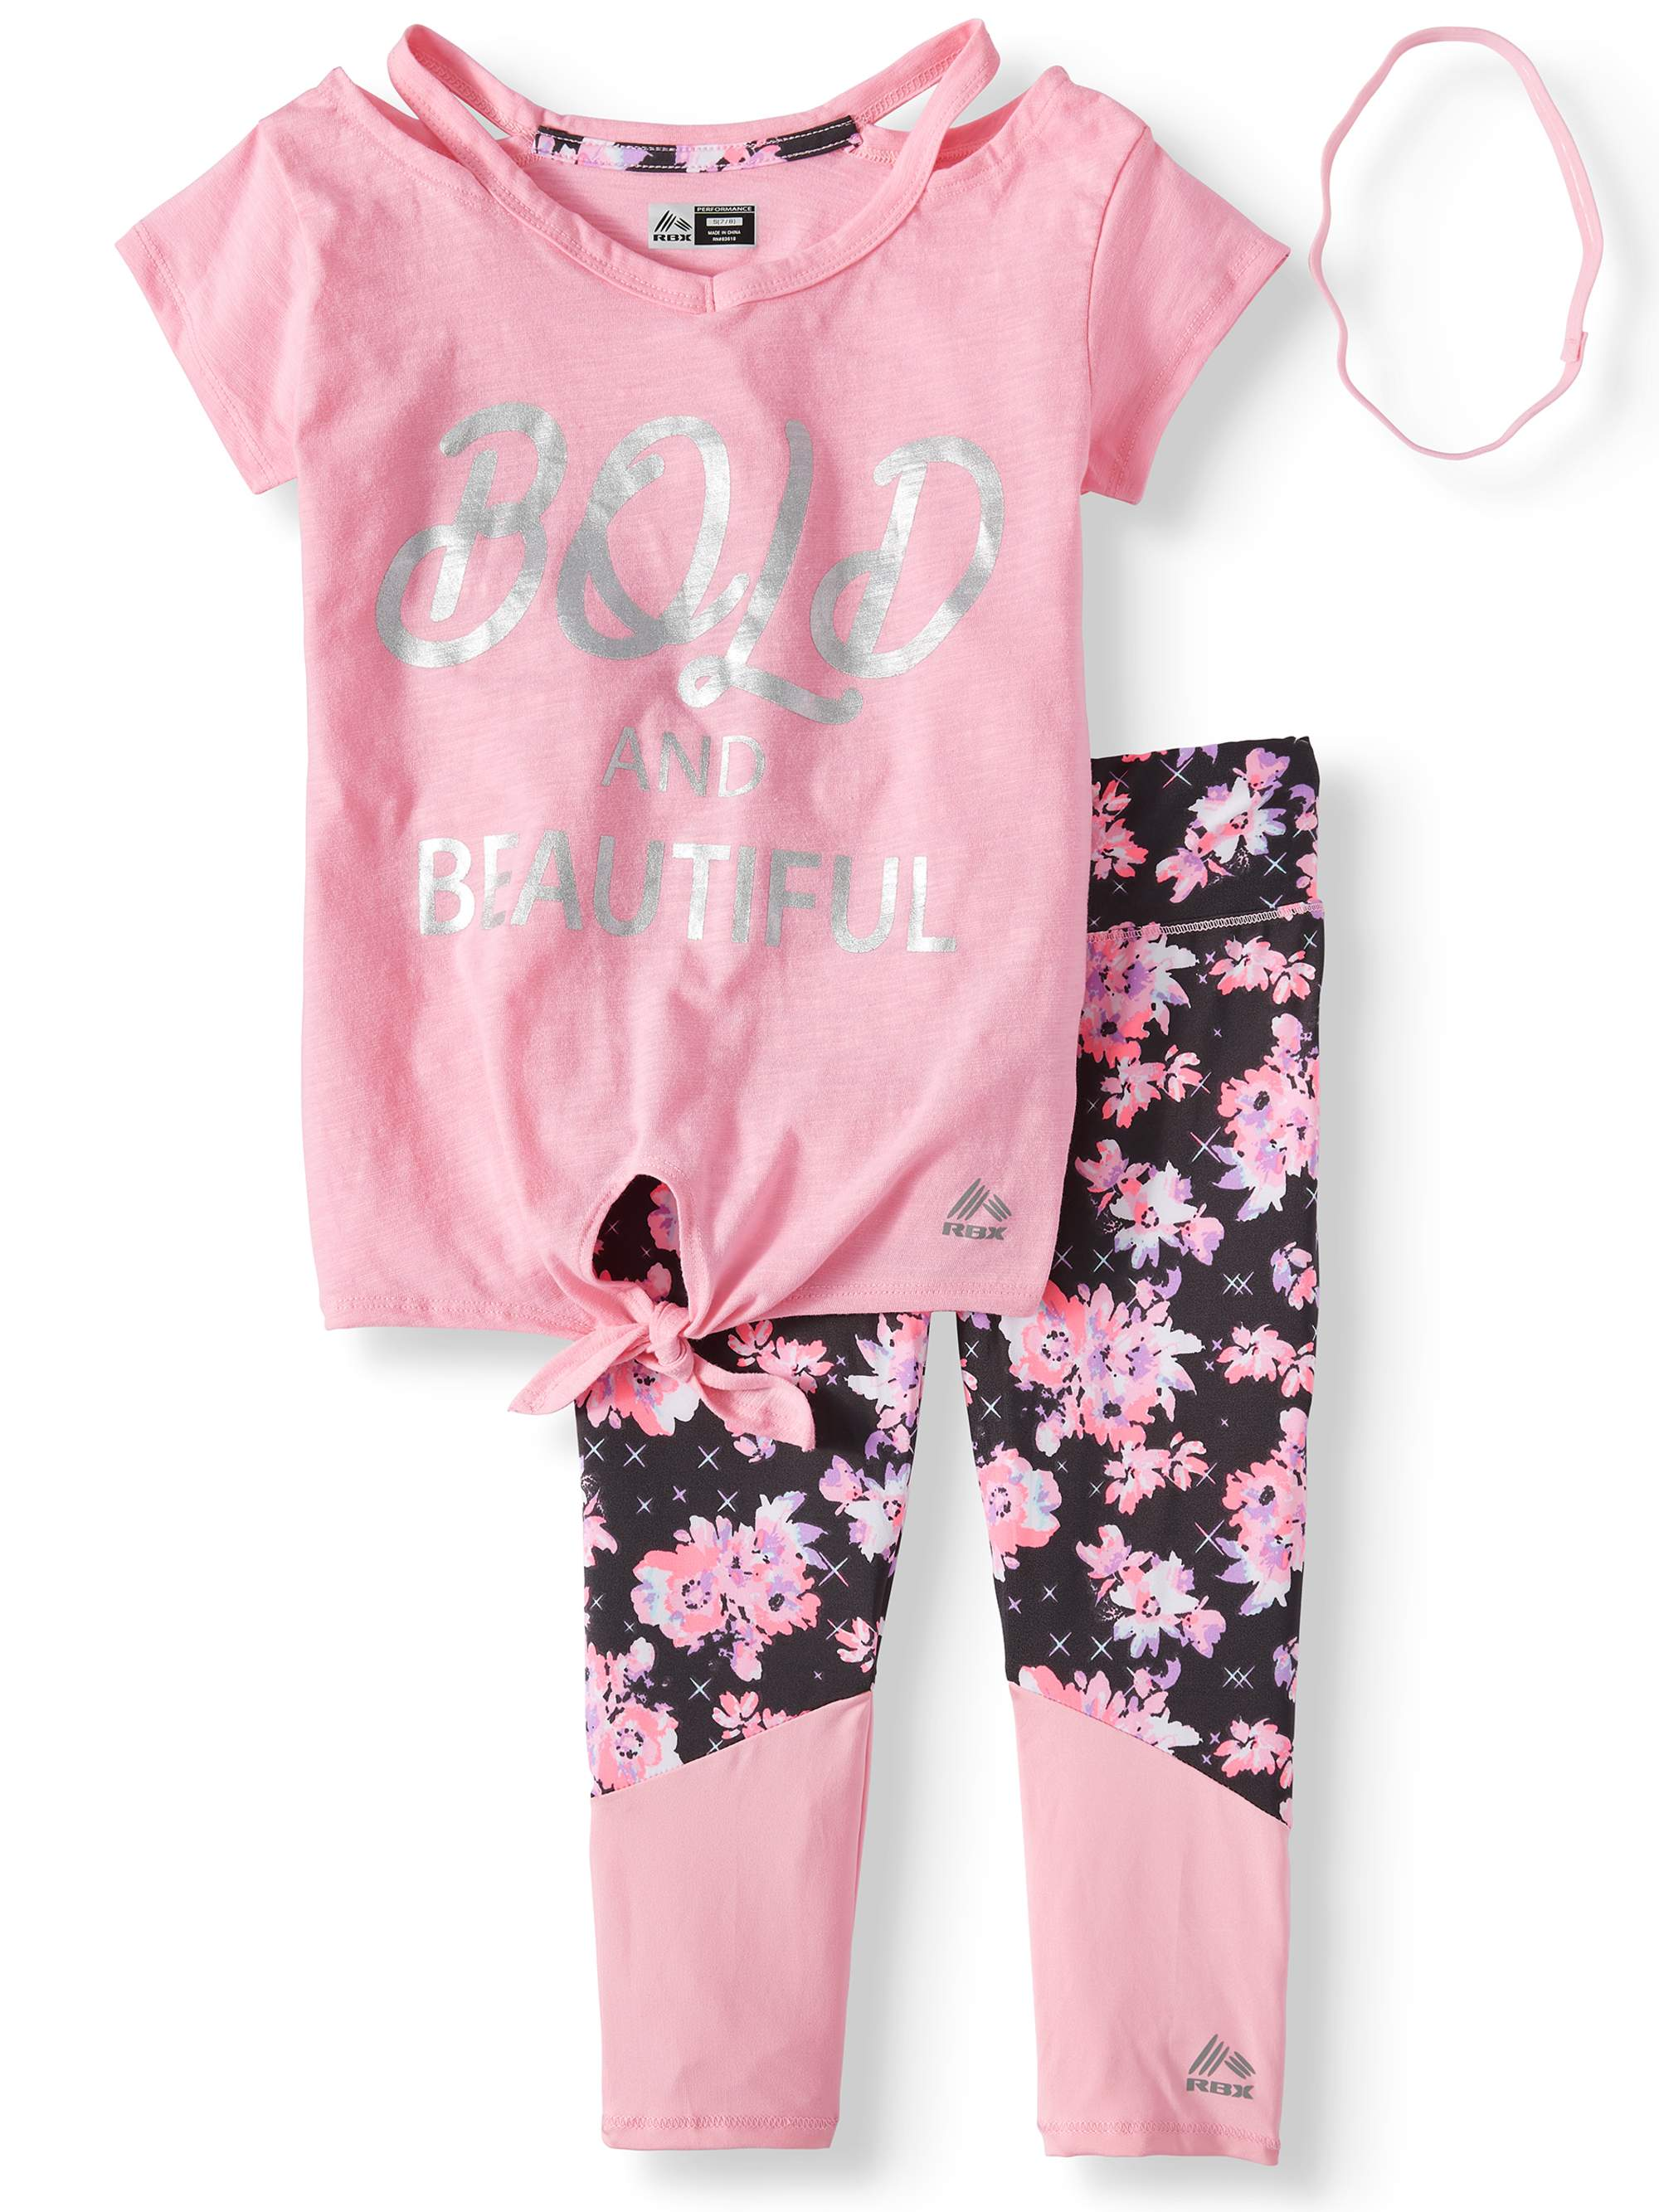 Foil Graphic Tie Front Top and Floral Performance Legging, 2-Piece Active Set (Little Girls & Big Girls)